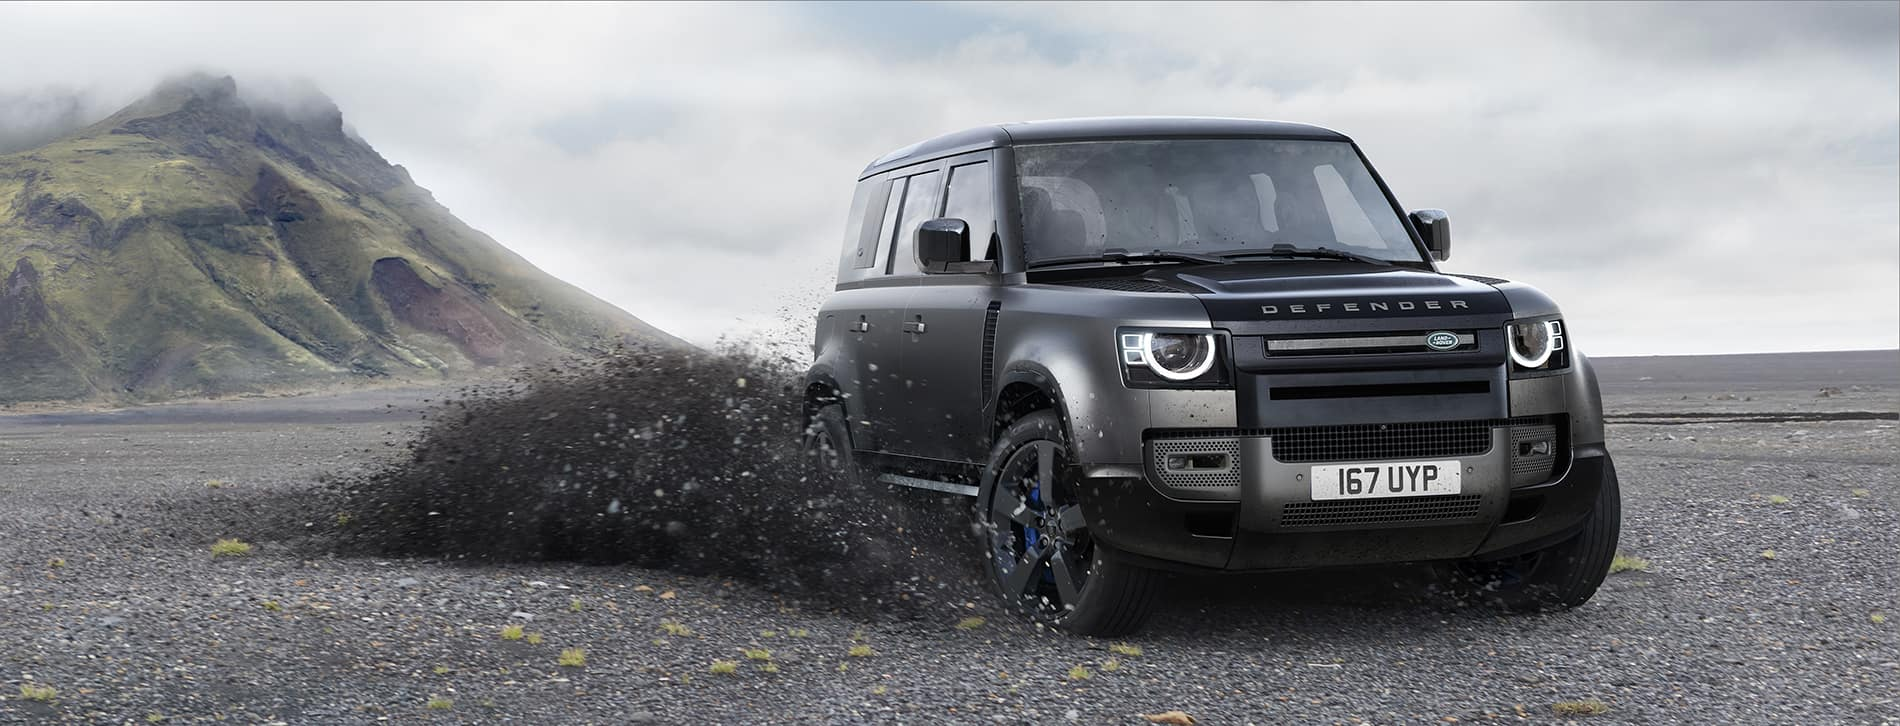 2022 Land Rover Defender V8 Preview at Land Rover Louisville